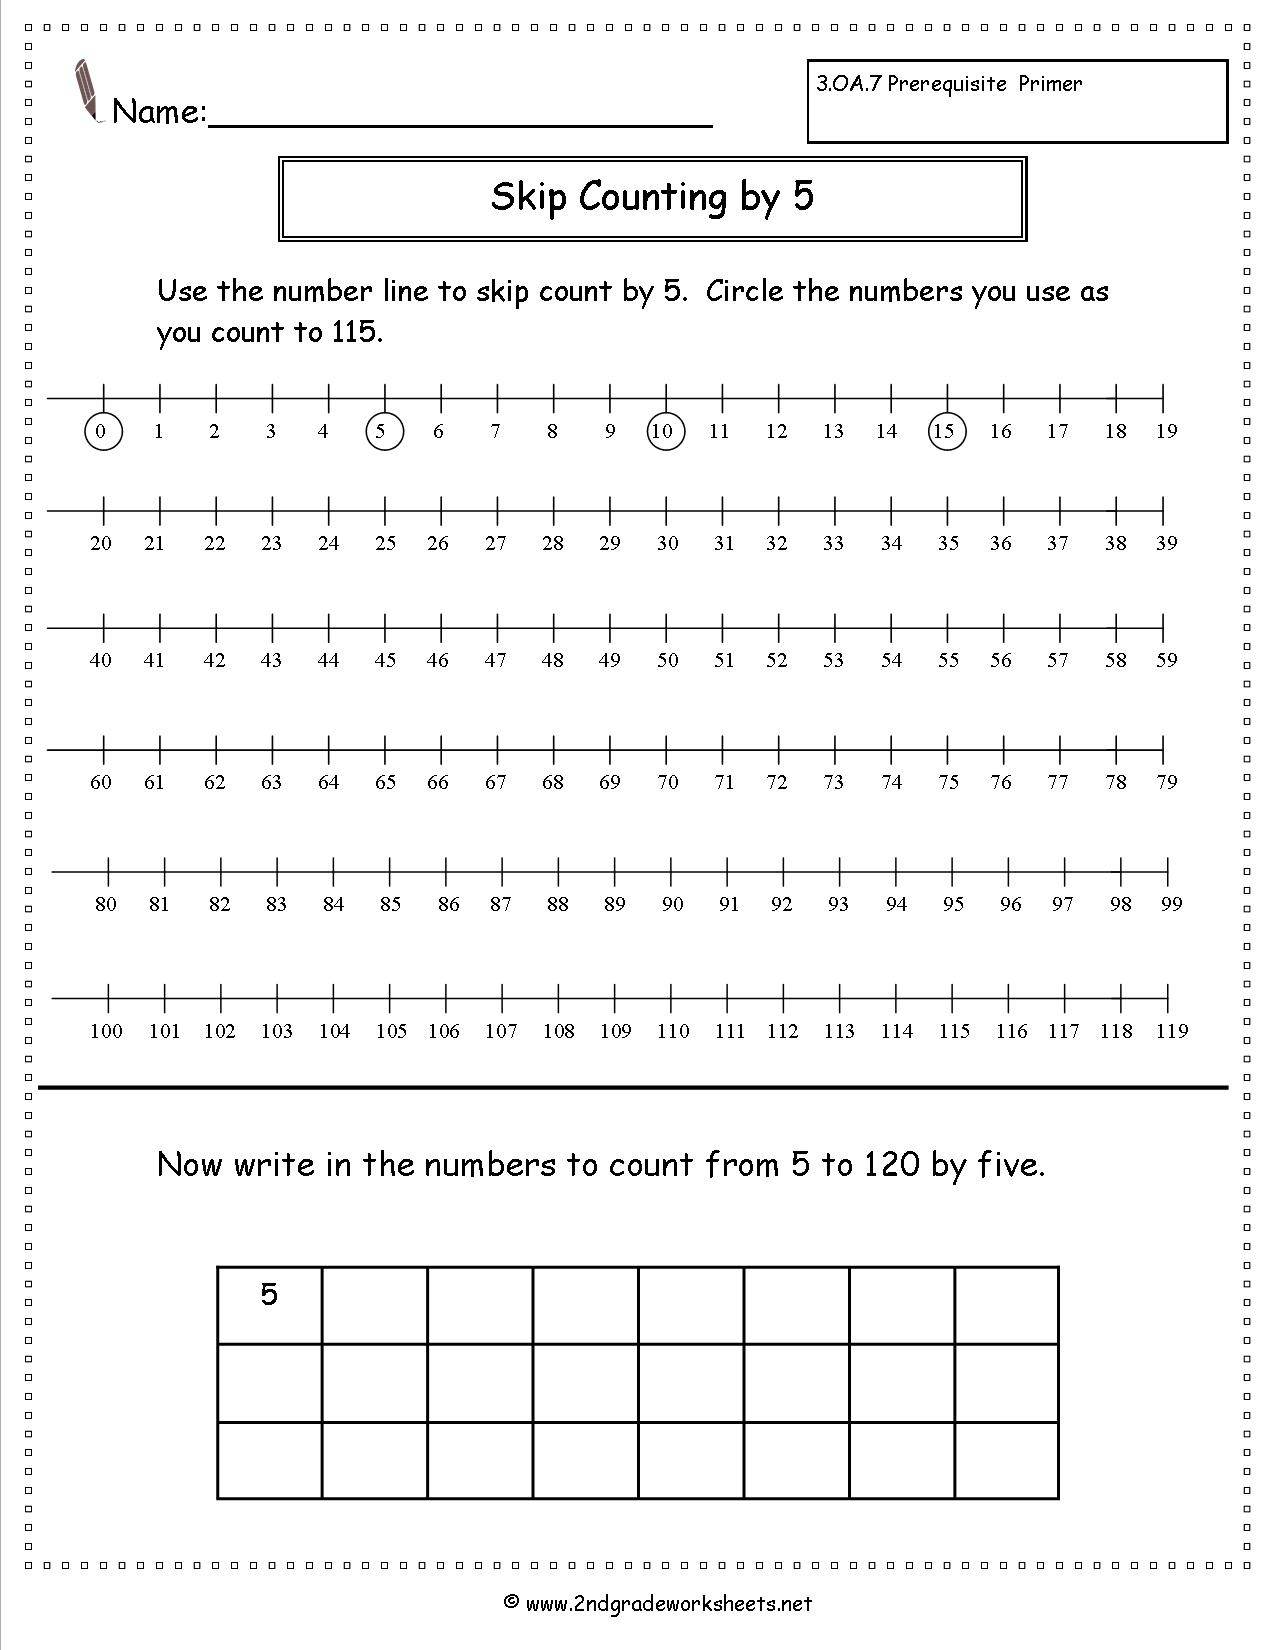 Free Skip Counting Worksheets - Free Printable Counting Worksheets